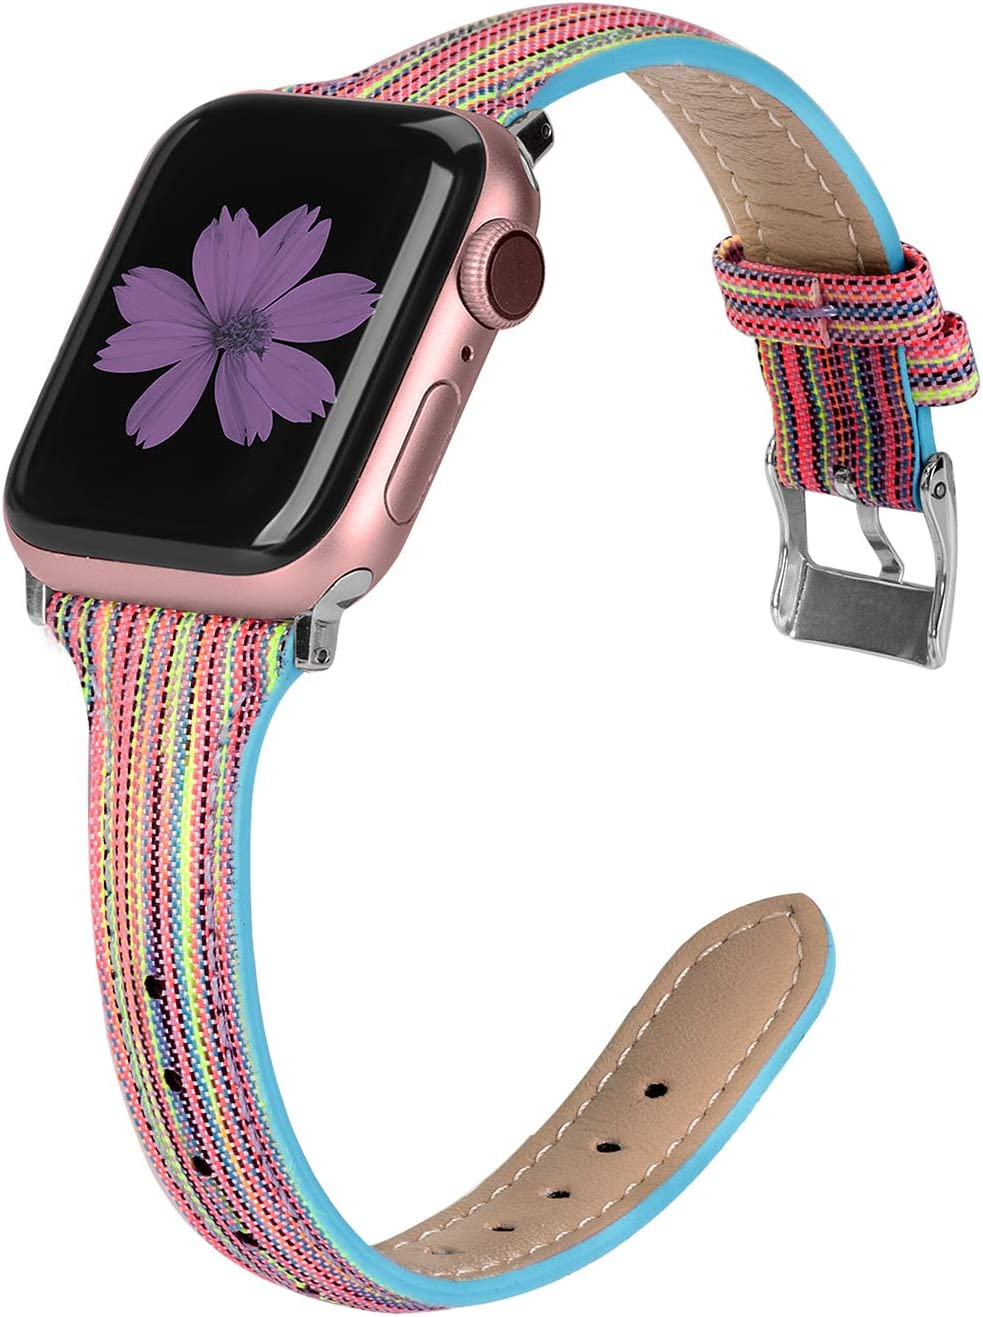 TOYOUTHS Compatible with Apple Watch Band 40mm 44mm Series 5 4 Woven Canvas Fabric Cloth Band Rose Gold Strap Wristband Women Men Compatible with iWatch Series 3 2 1 38mm 42mm, Multicolor, 38mm